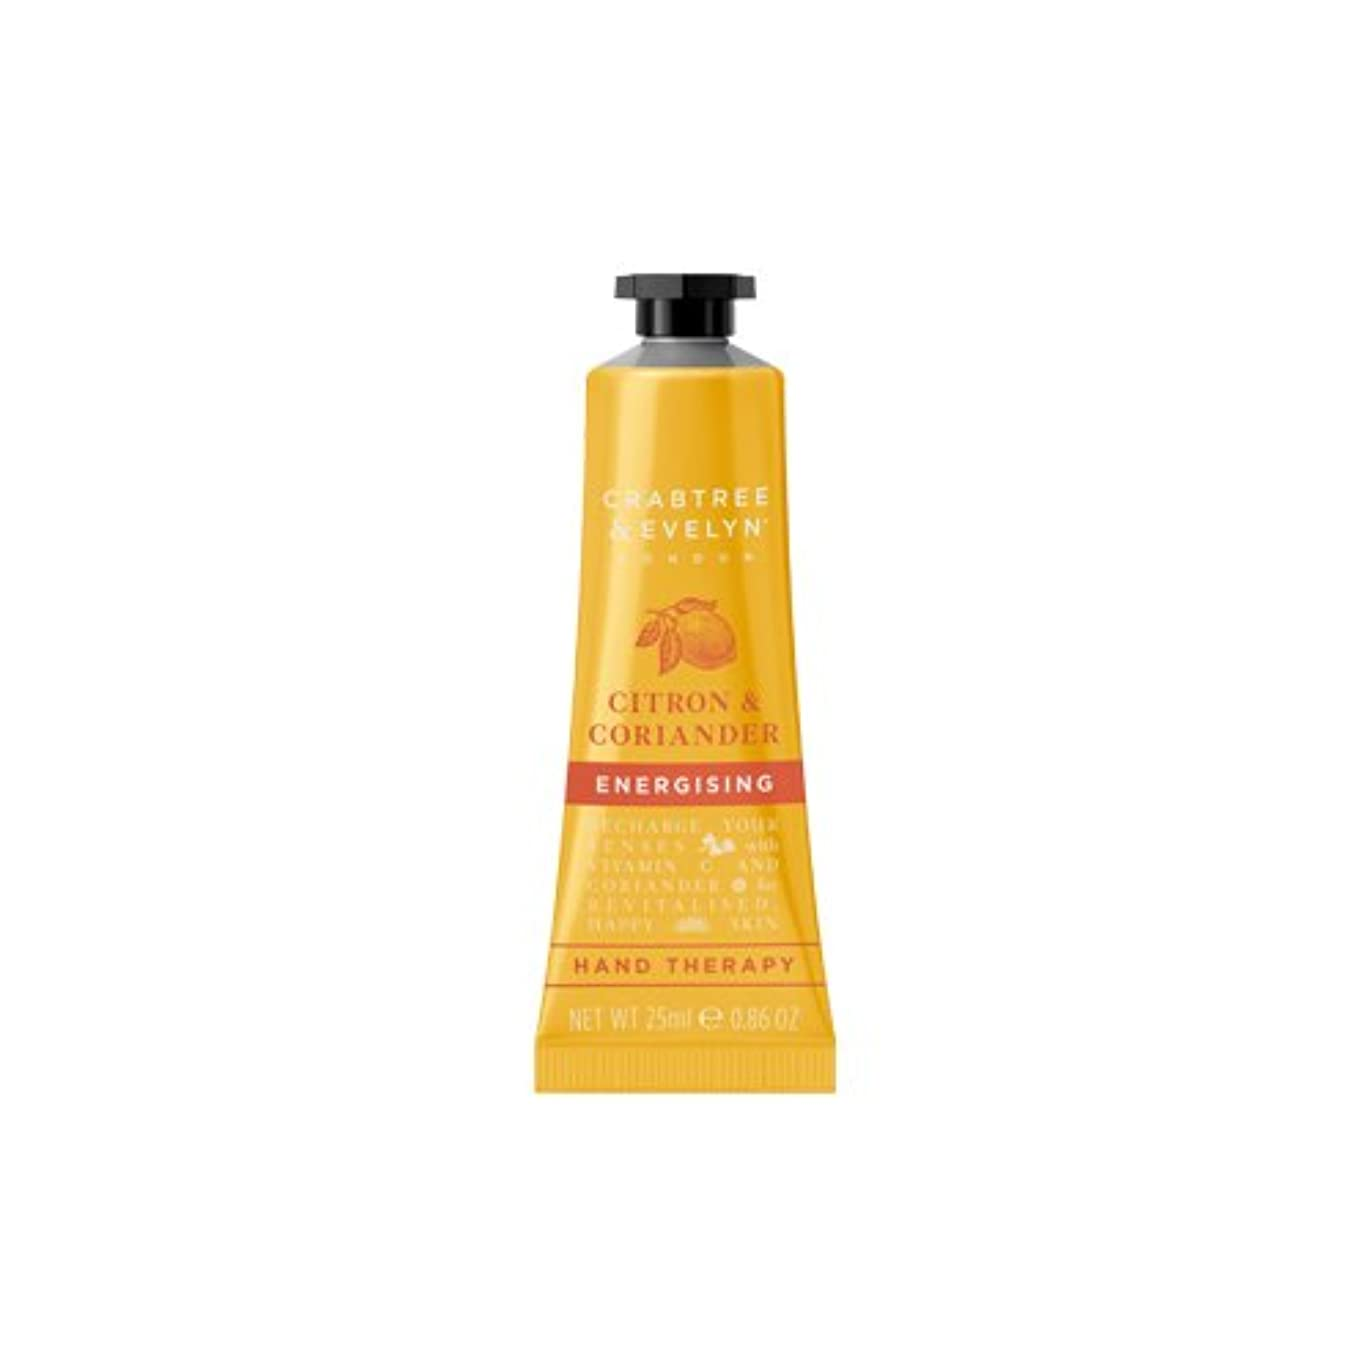 クラブツリー&イヴリン Citron & Coriander Energising Hand Therapy 25ml/0.86oz並行輸入品